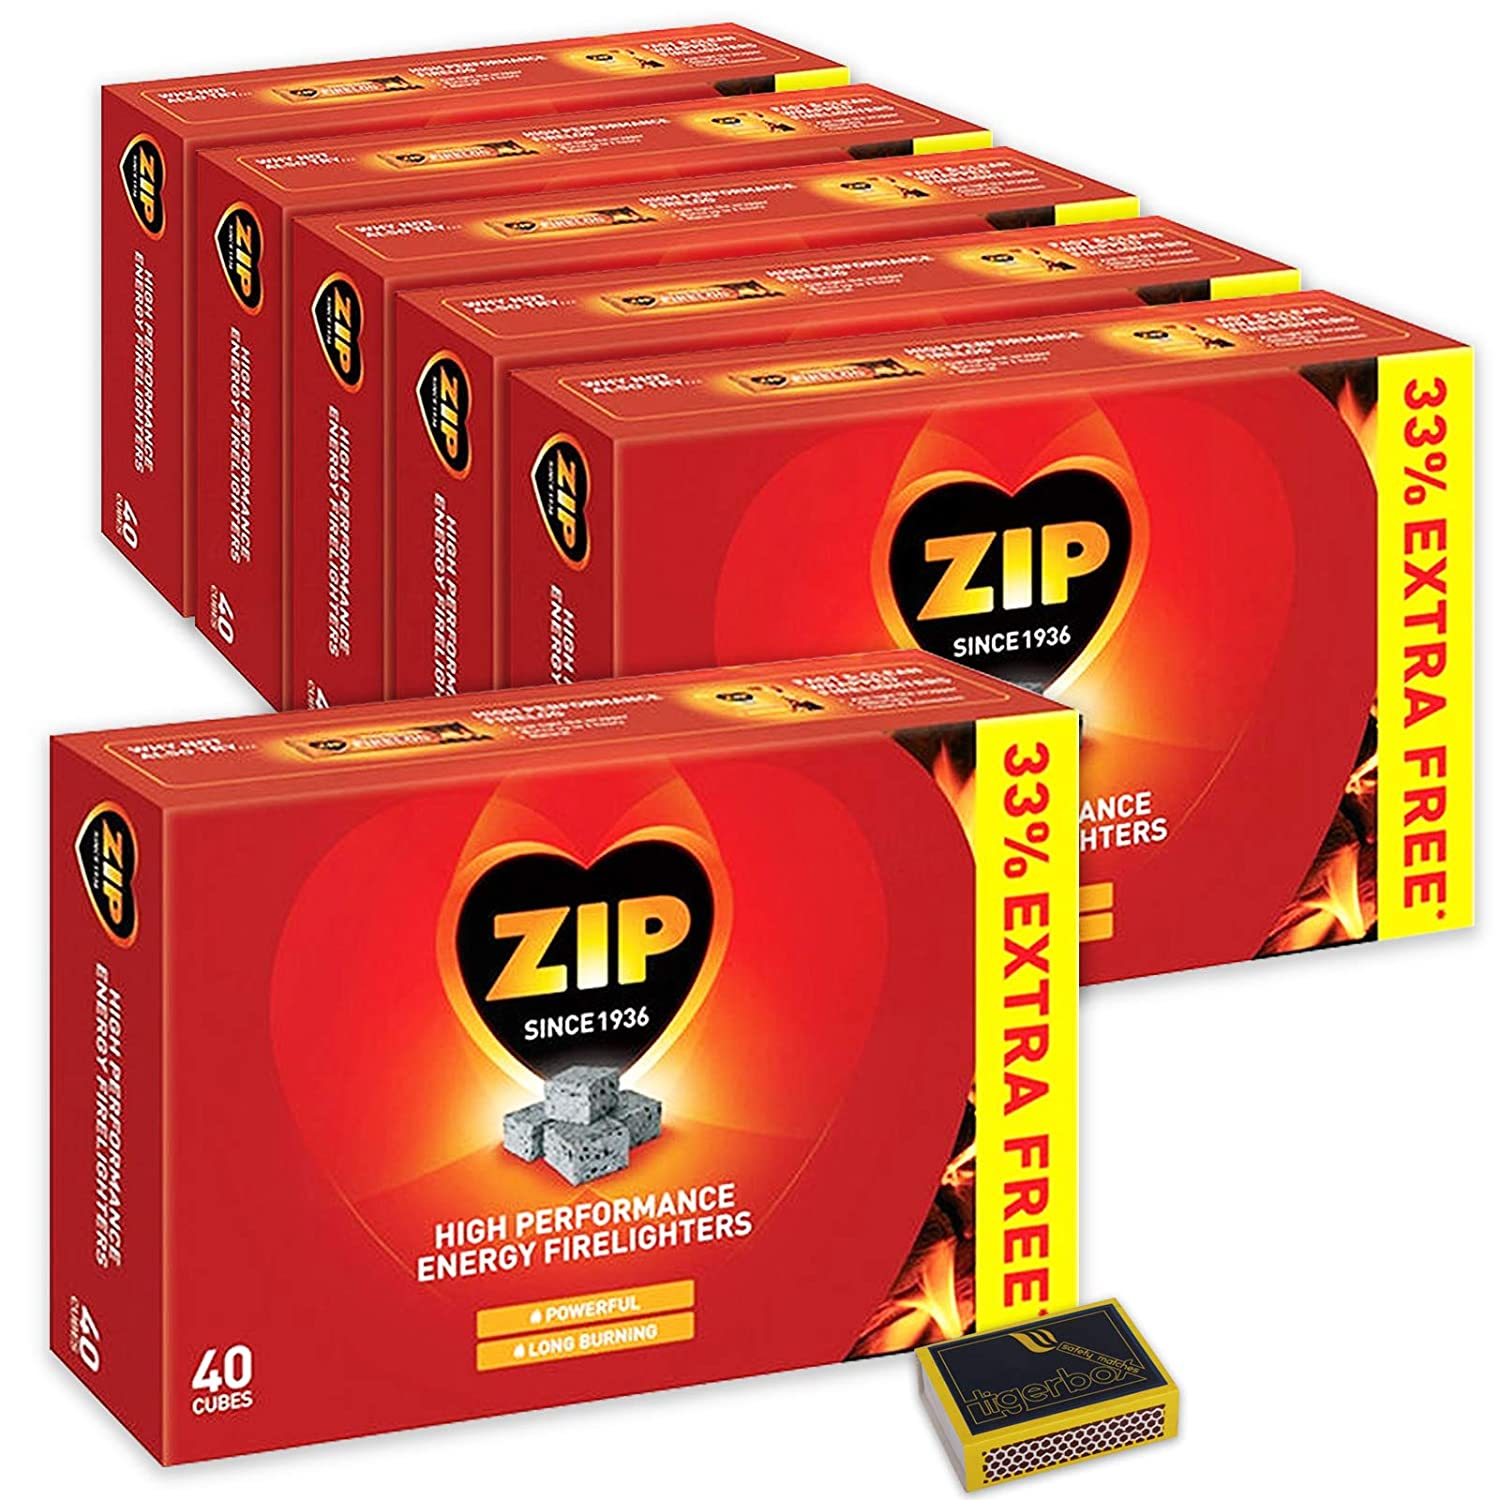 6 X Packs of 40 Zip High Performance Energy Block Firelighters. Long Burning, Powerful & Reliable for Open Fires, Stoves, BBQs & Tigerbox Safety Matches Zip & Tigerbox